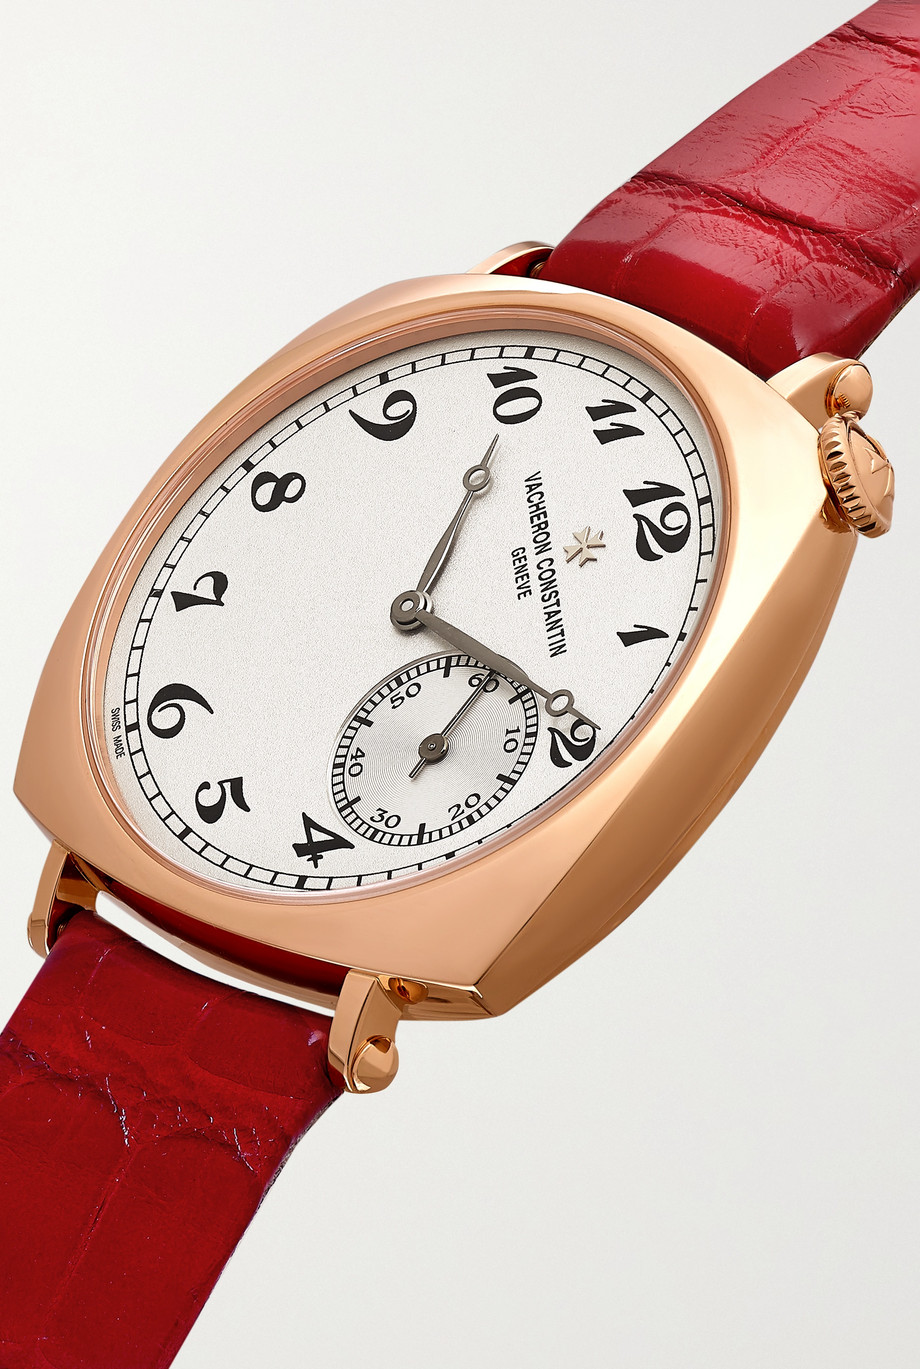 Vacheron Constantin Historiques American 1921 Hand-Wound 36.5mm 18-karat pink gold and alligator watch